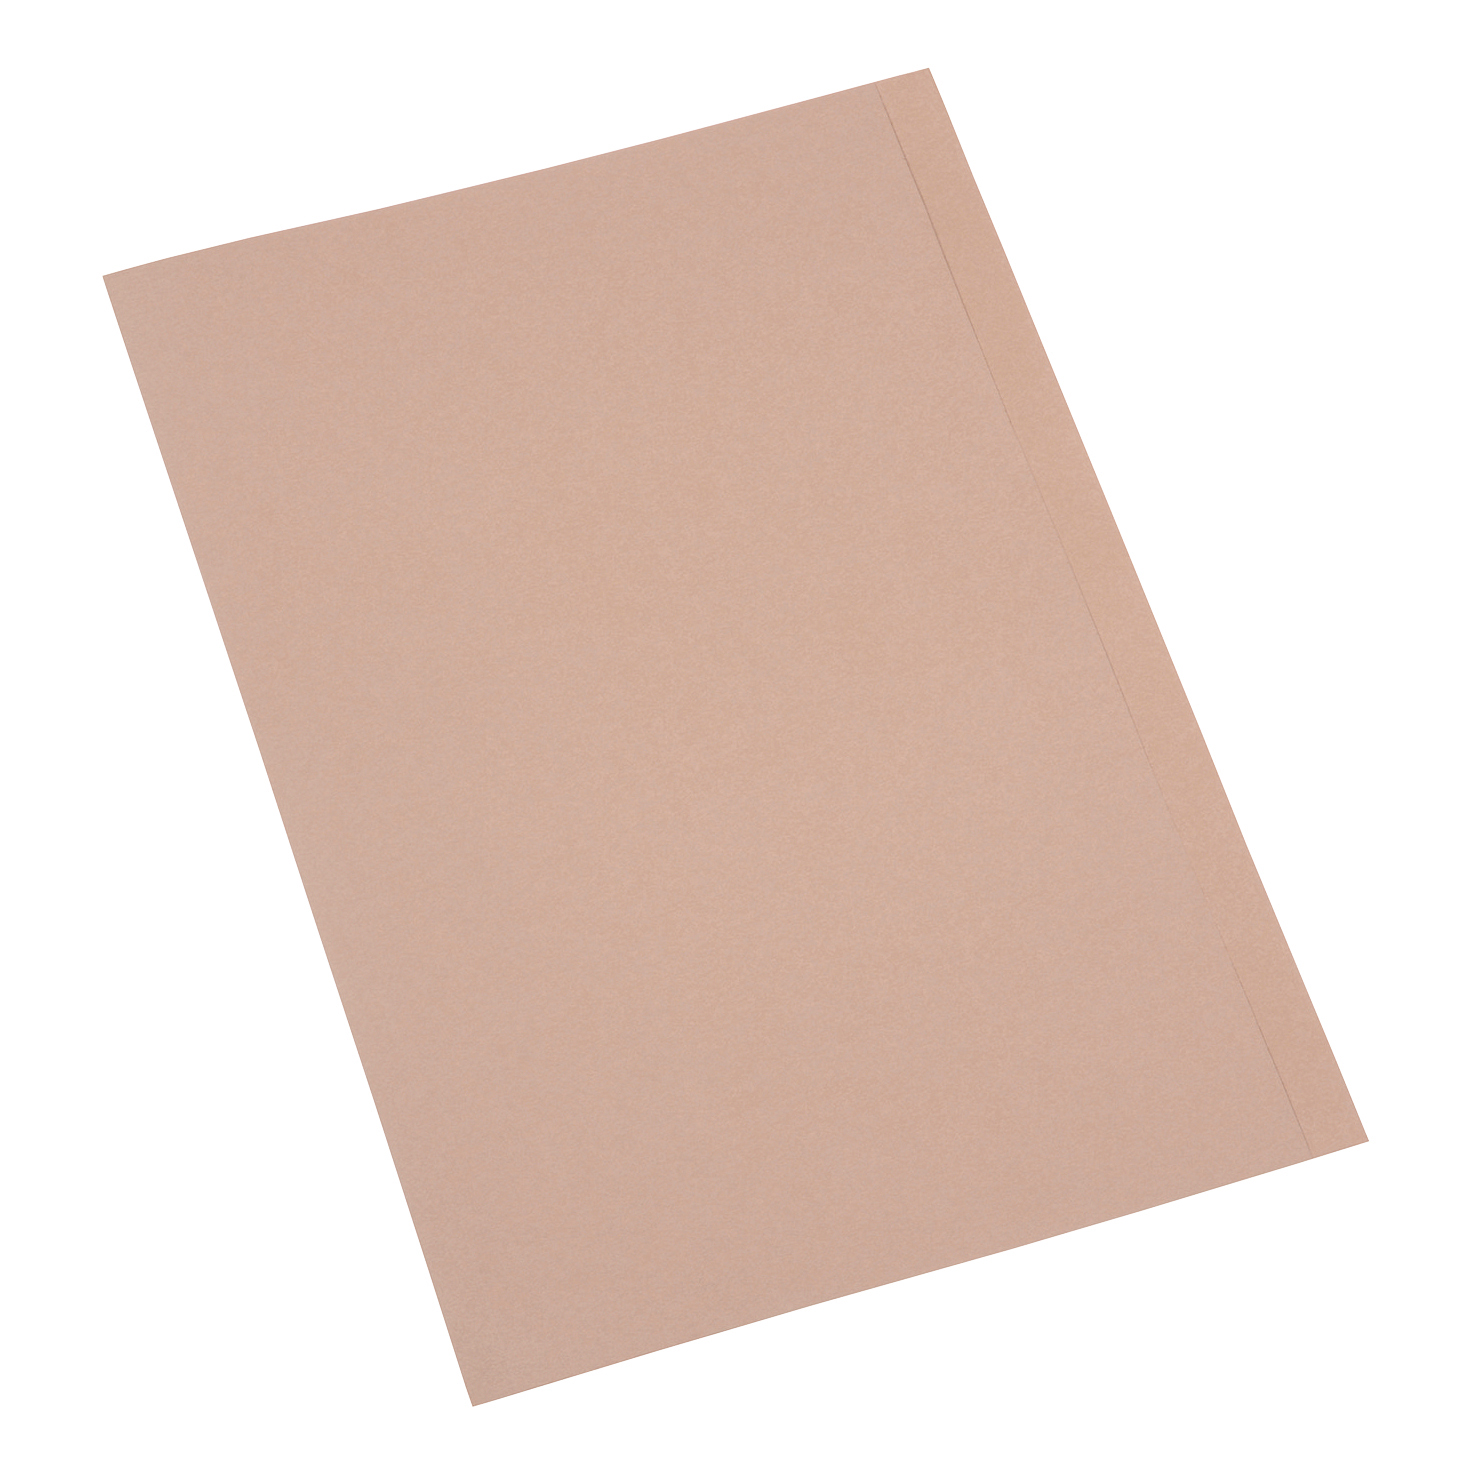 Image for 5 Star Eco Square Cut Folders 170gsm A4 Recycled Kraft [Pack 100]